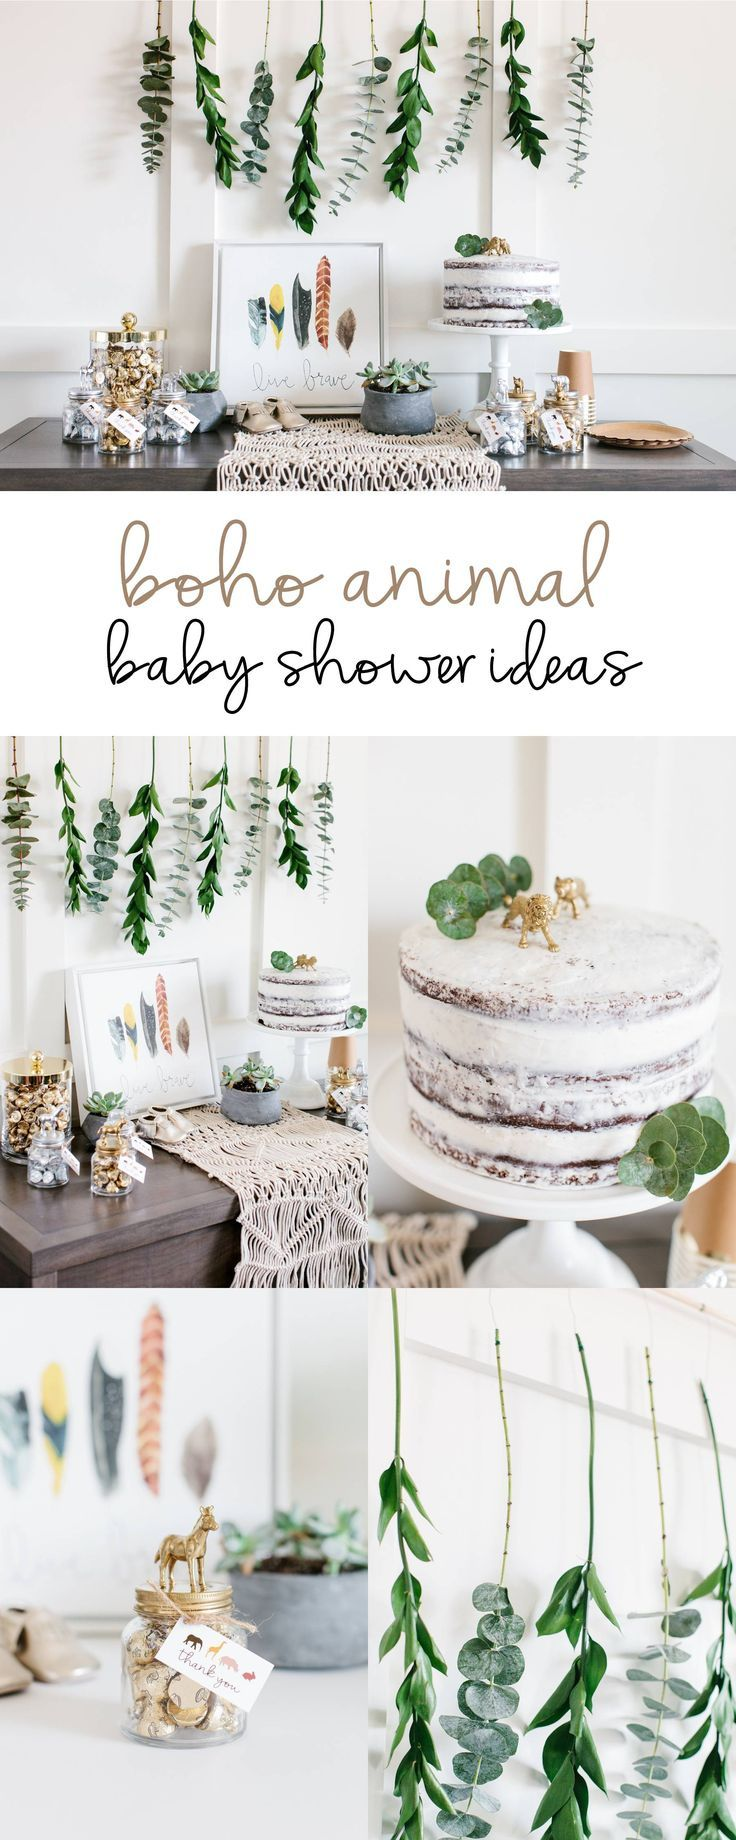 Gender neutral baby shower ideas pinterest - Boho Animal Baby Shower Ideas Styled By The Tomkat Studio